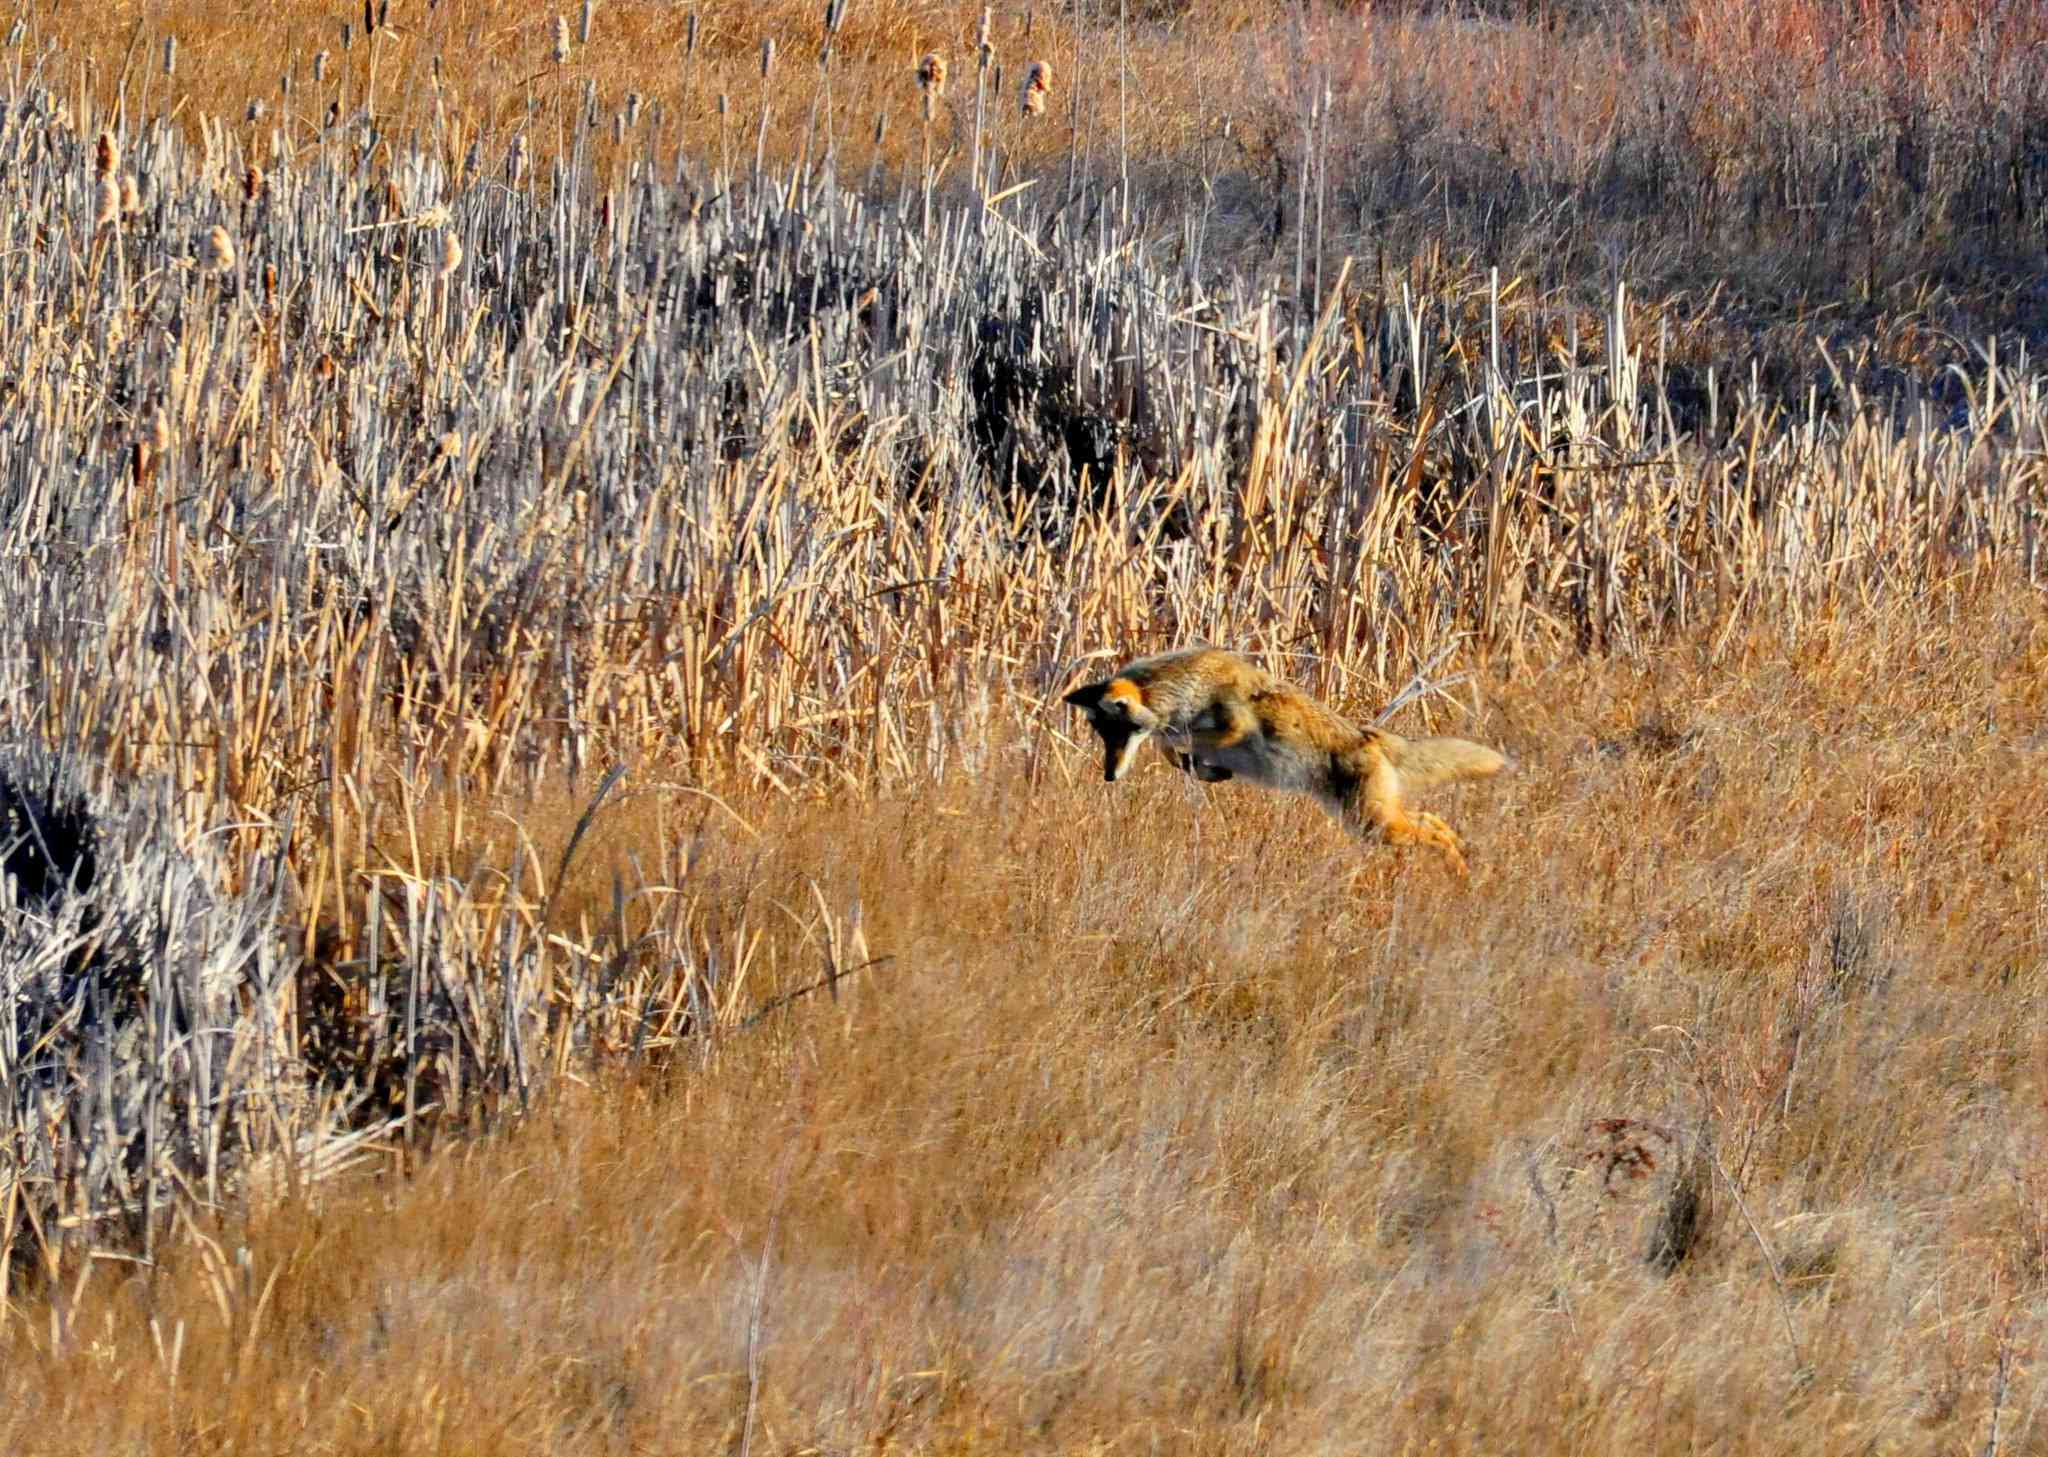 coyote hunting meadow voles by leaping in air